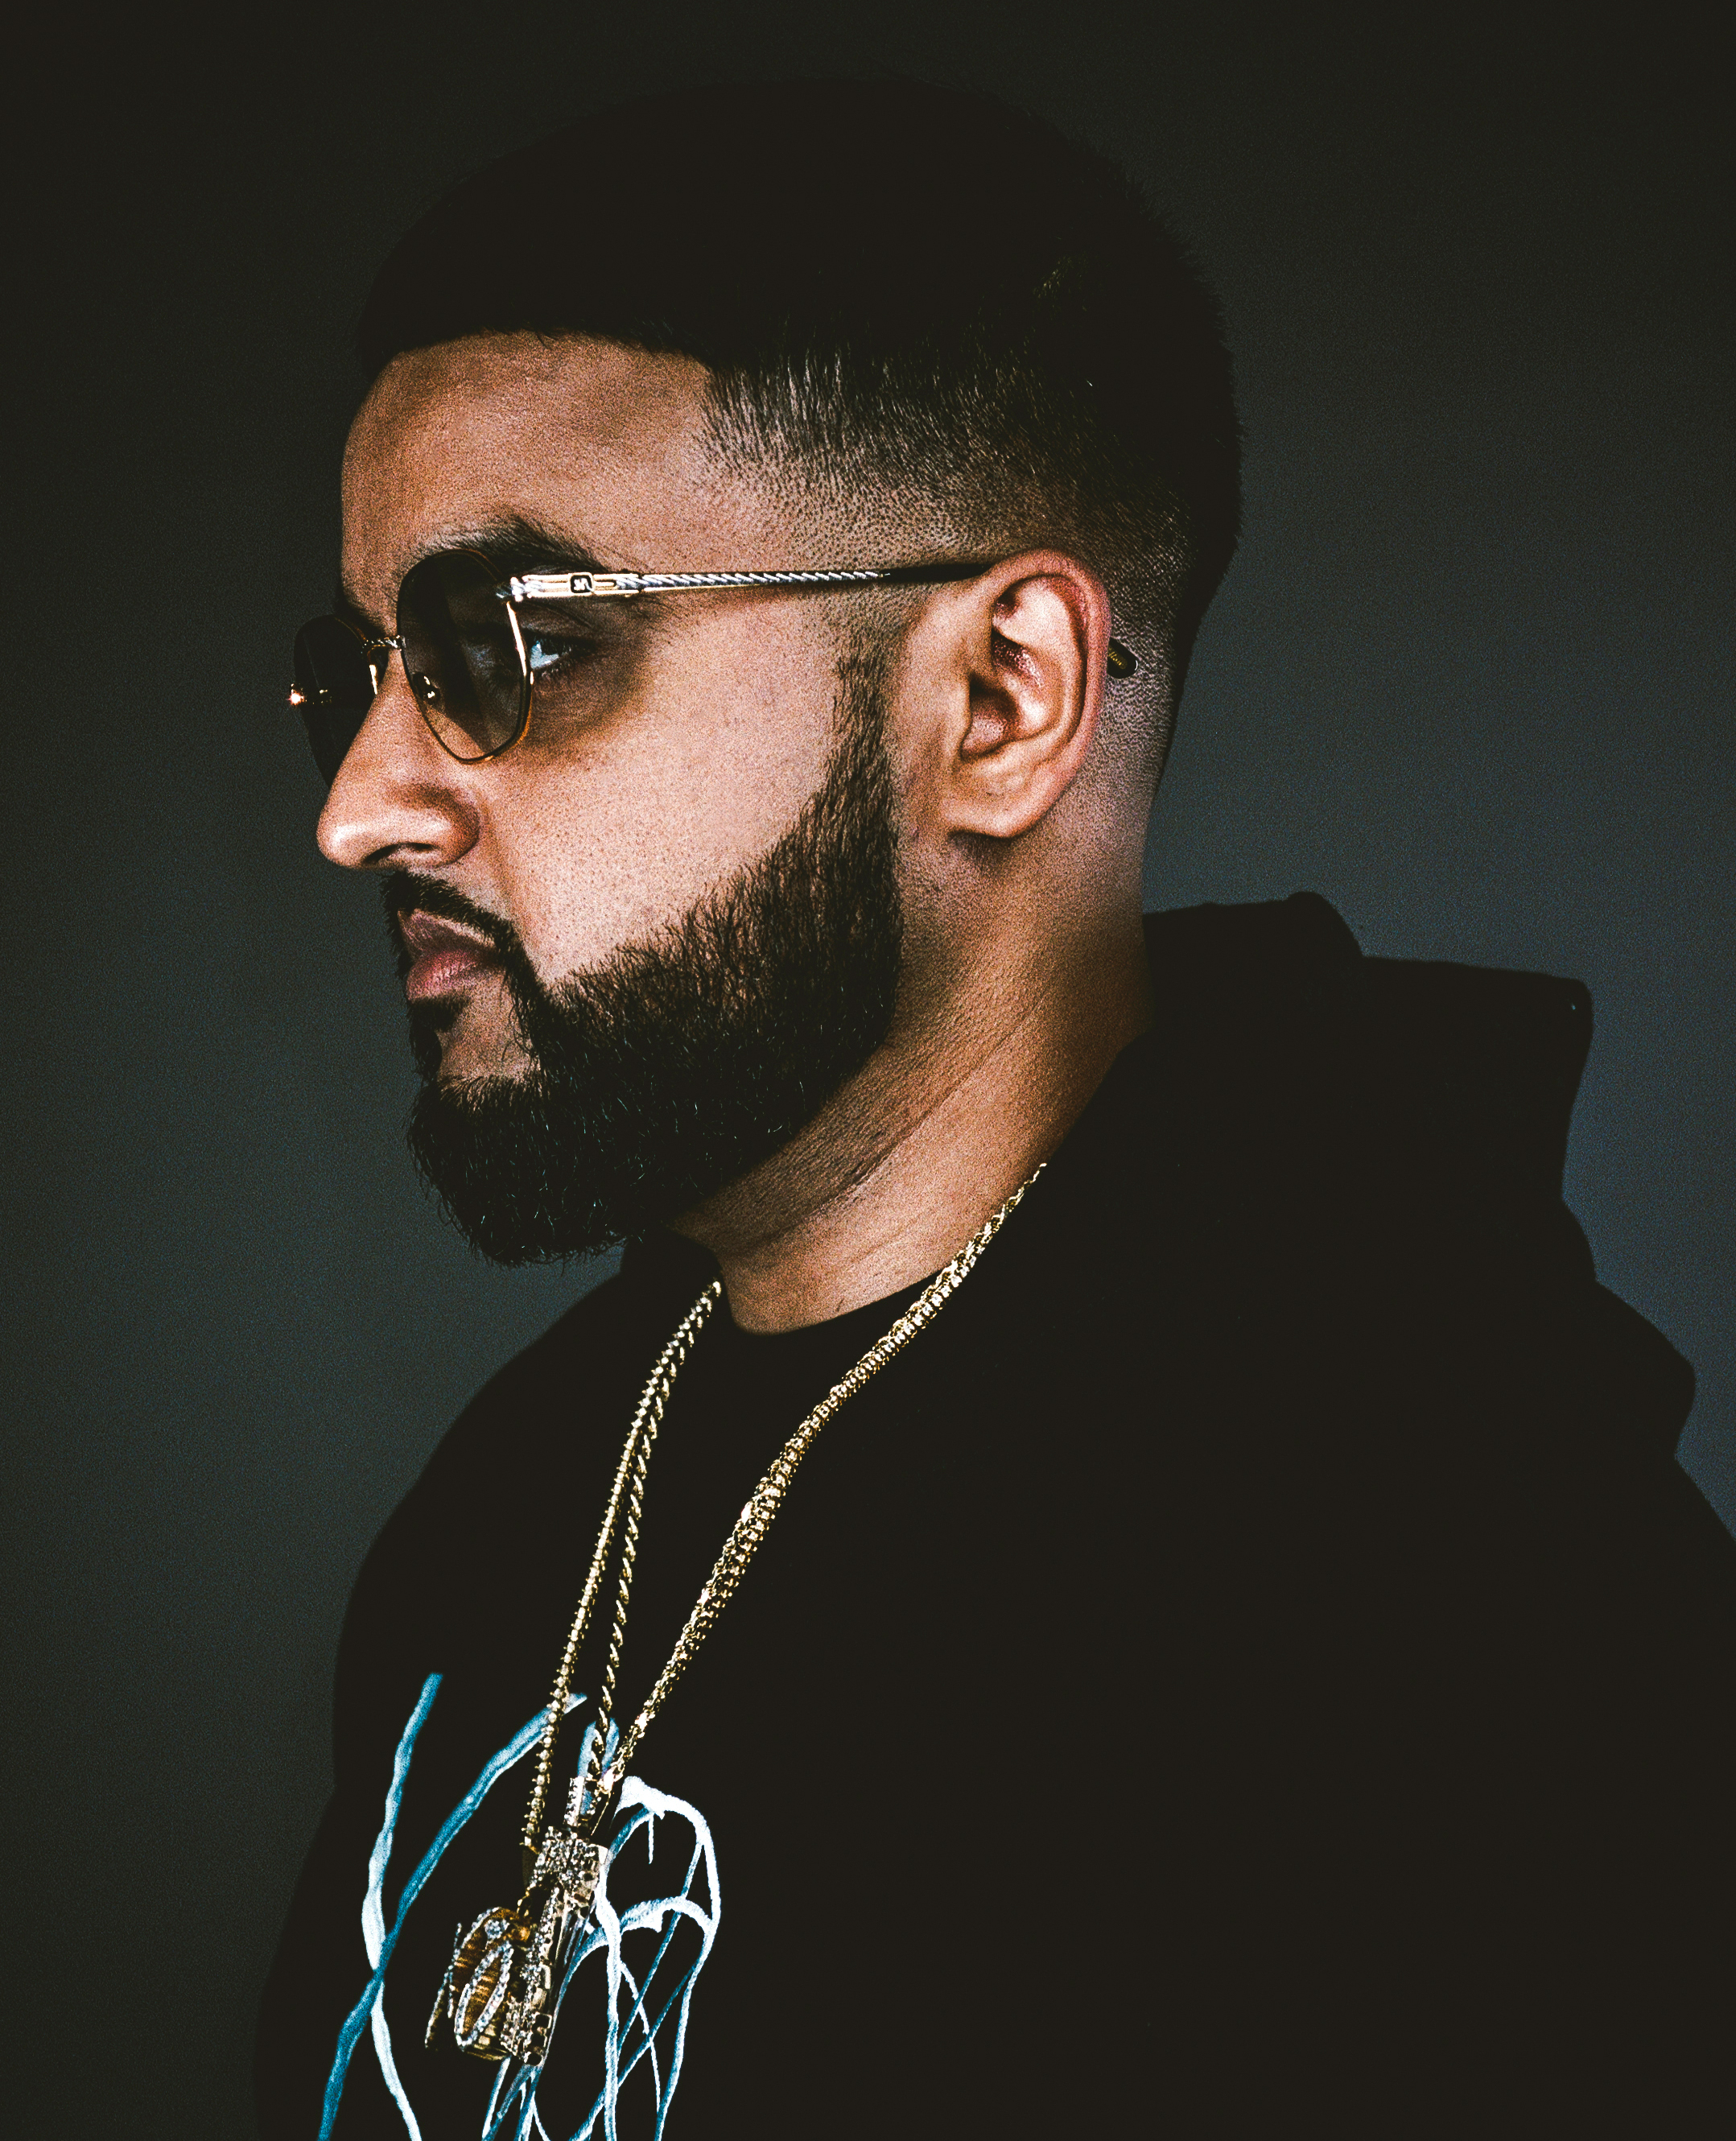 The 29-year old son of father (?) and mother(?) Nav in 2019 photo. Nav earned a  million dollar salary - leaving the net worth at  million in 2019